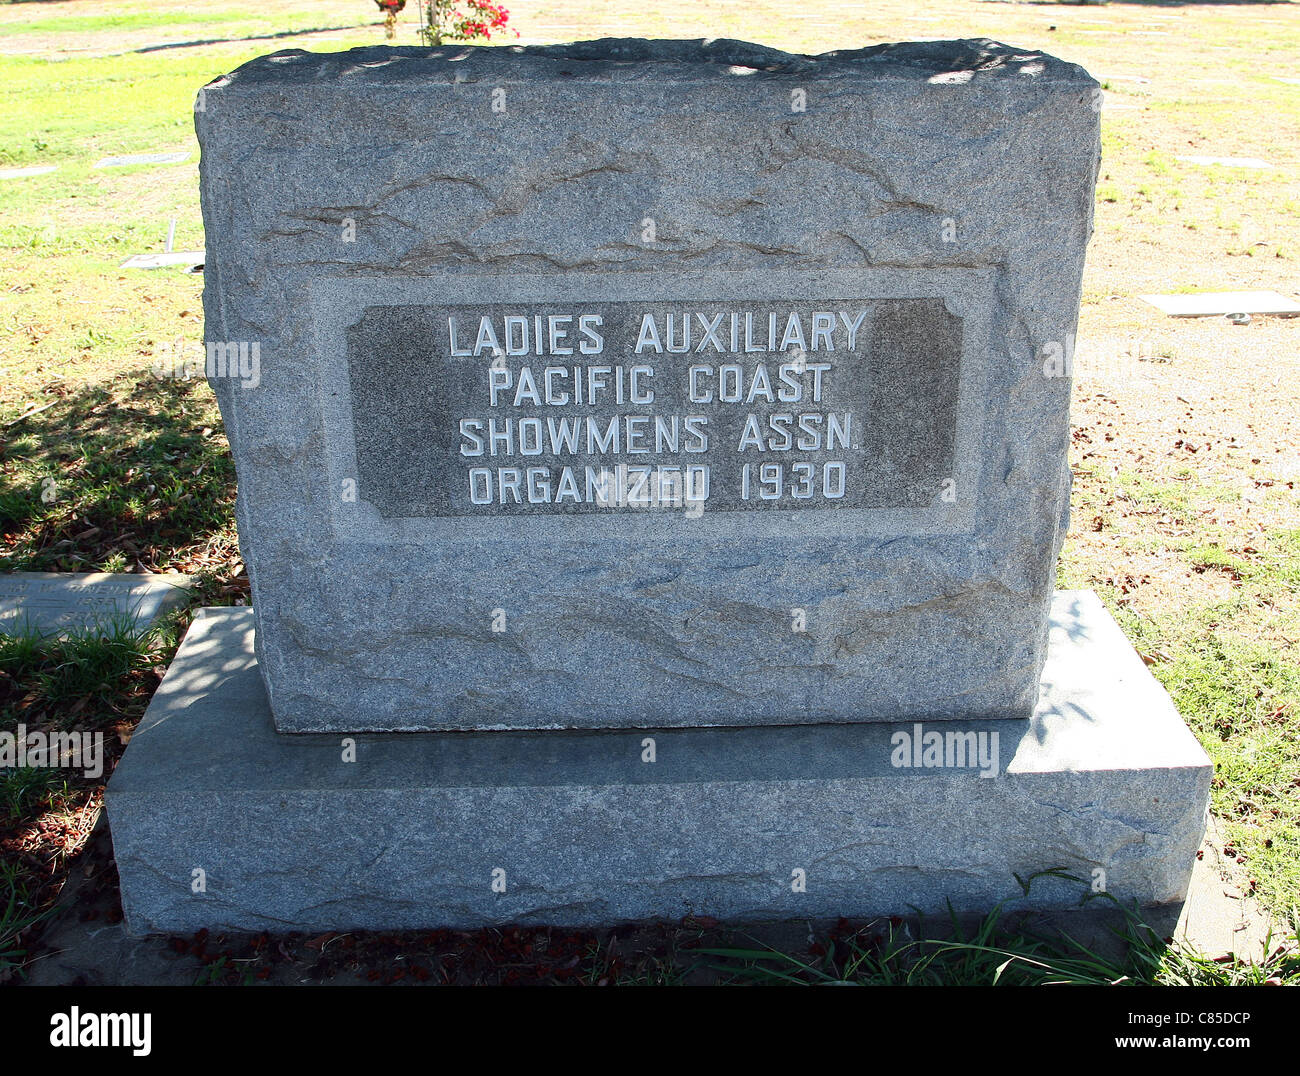 LADIES AUXILIARY PACIFIC COAST SHOWMEN'S ASSOCIATION STONE SHOWMEN'S REST AT THE EVERGREEN MEMORIAL PARK - Stock Image